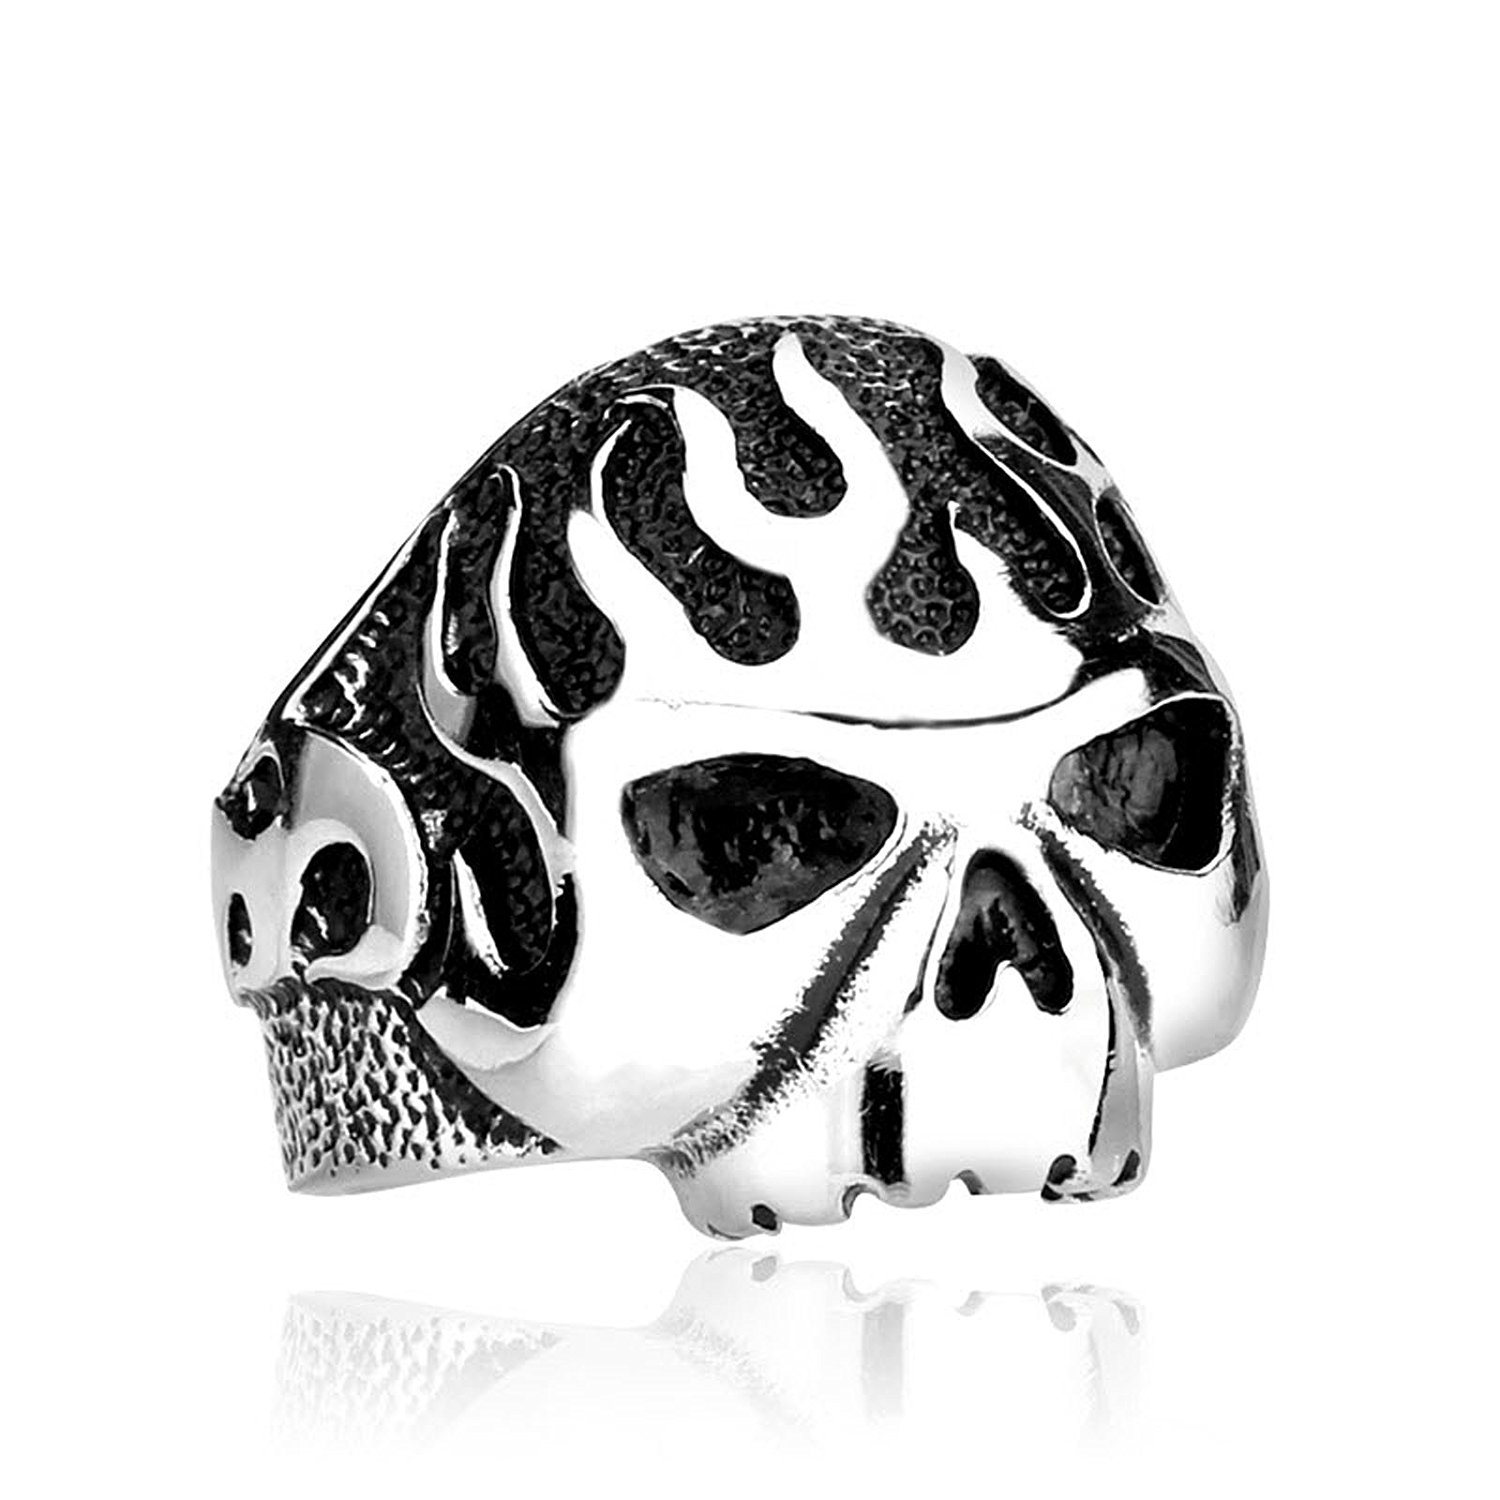 male skull black stainless com for ring steel quality jewelry product dhgate skeleton high men from rings